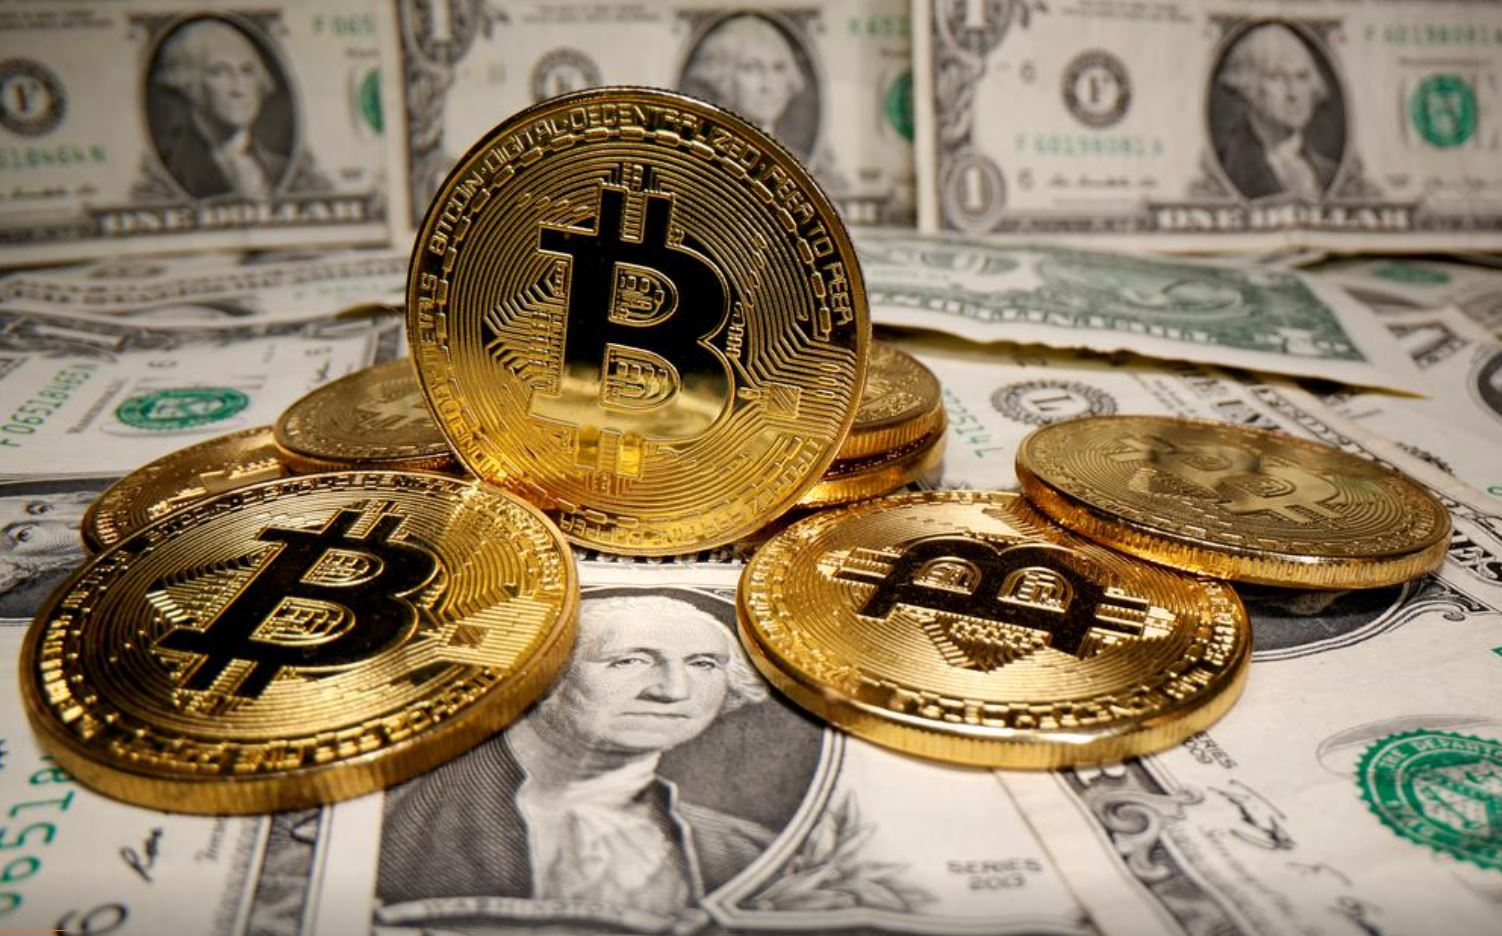 Refund of cryptocurrency transactions. Reality or Fiction?